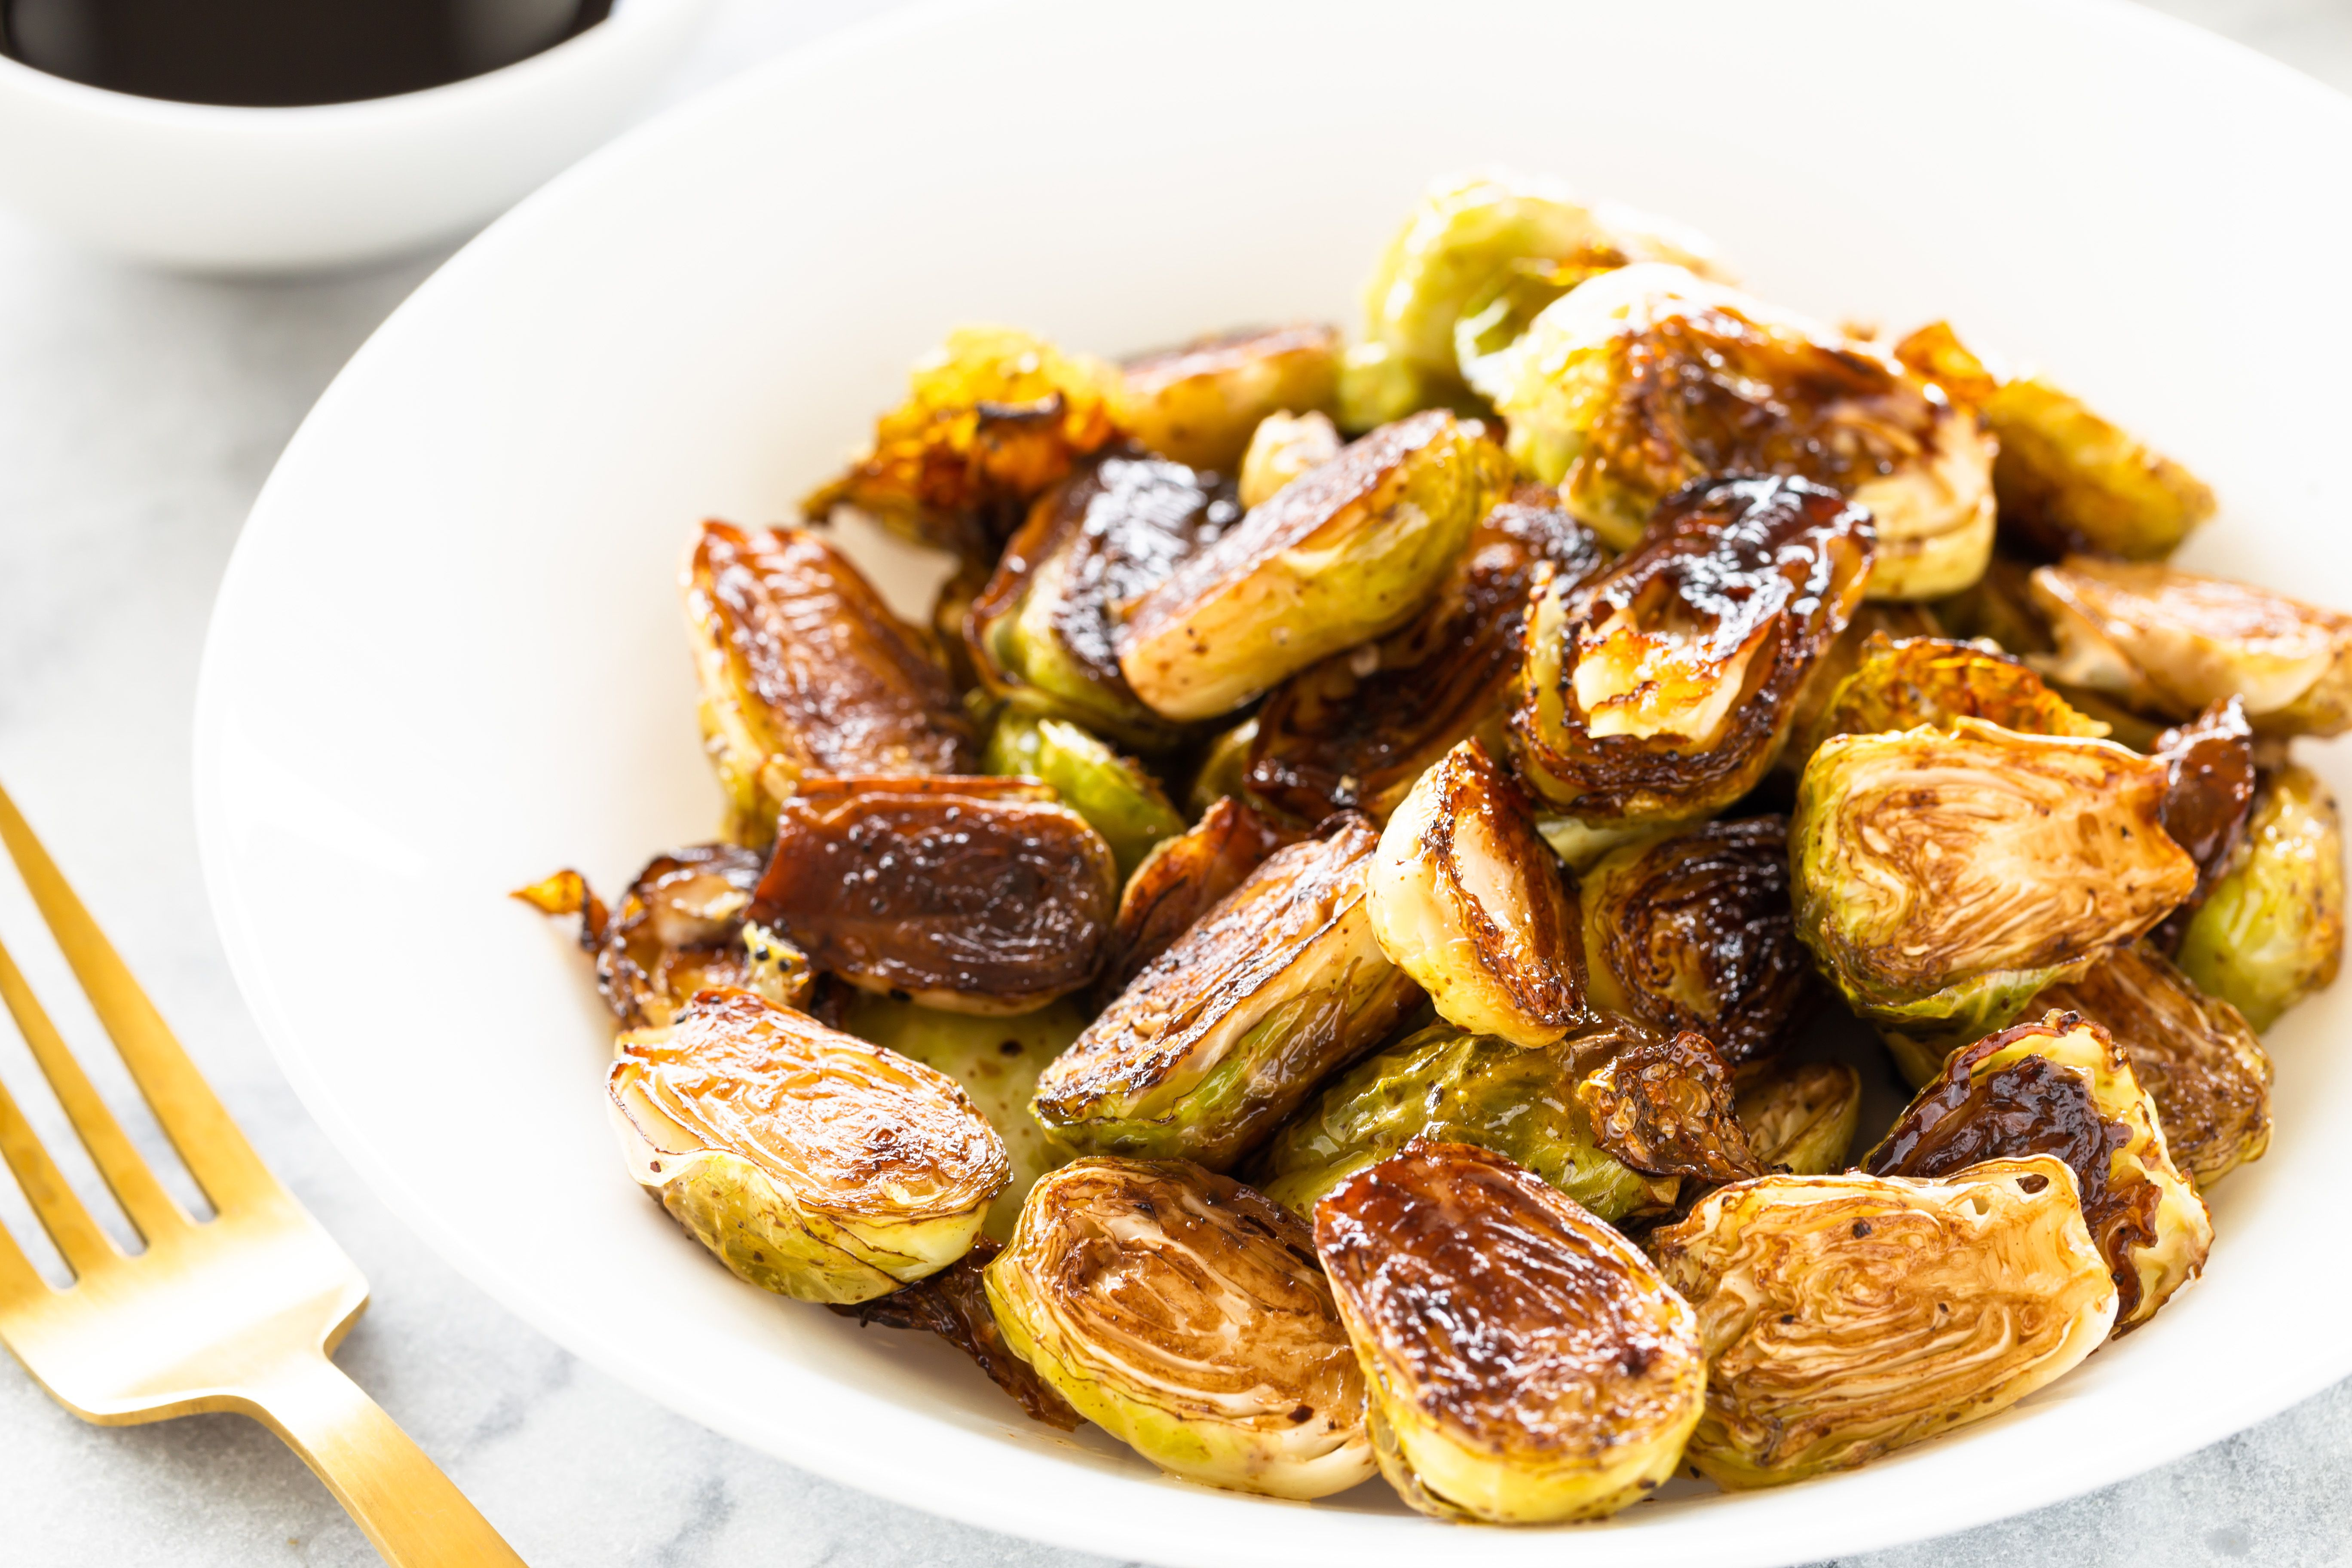 Brussel sprouts with balsamic vinegar